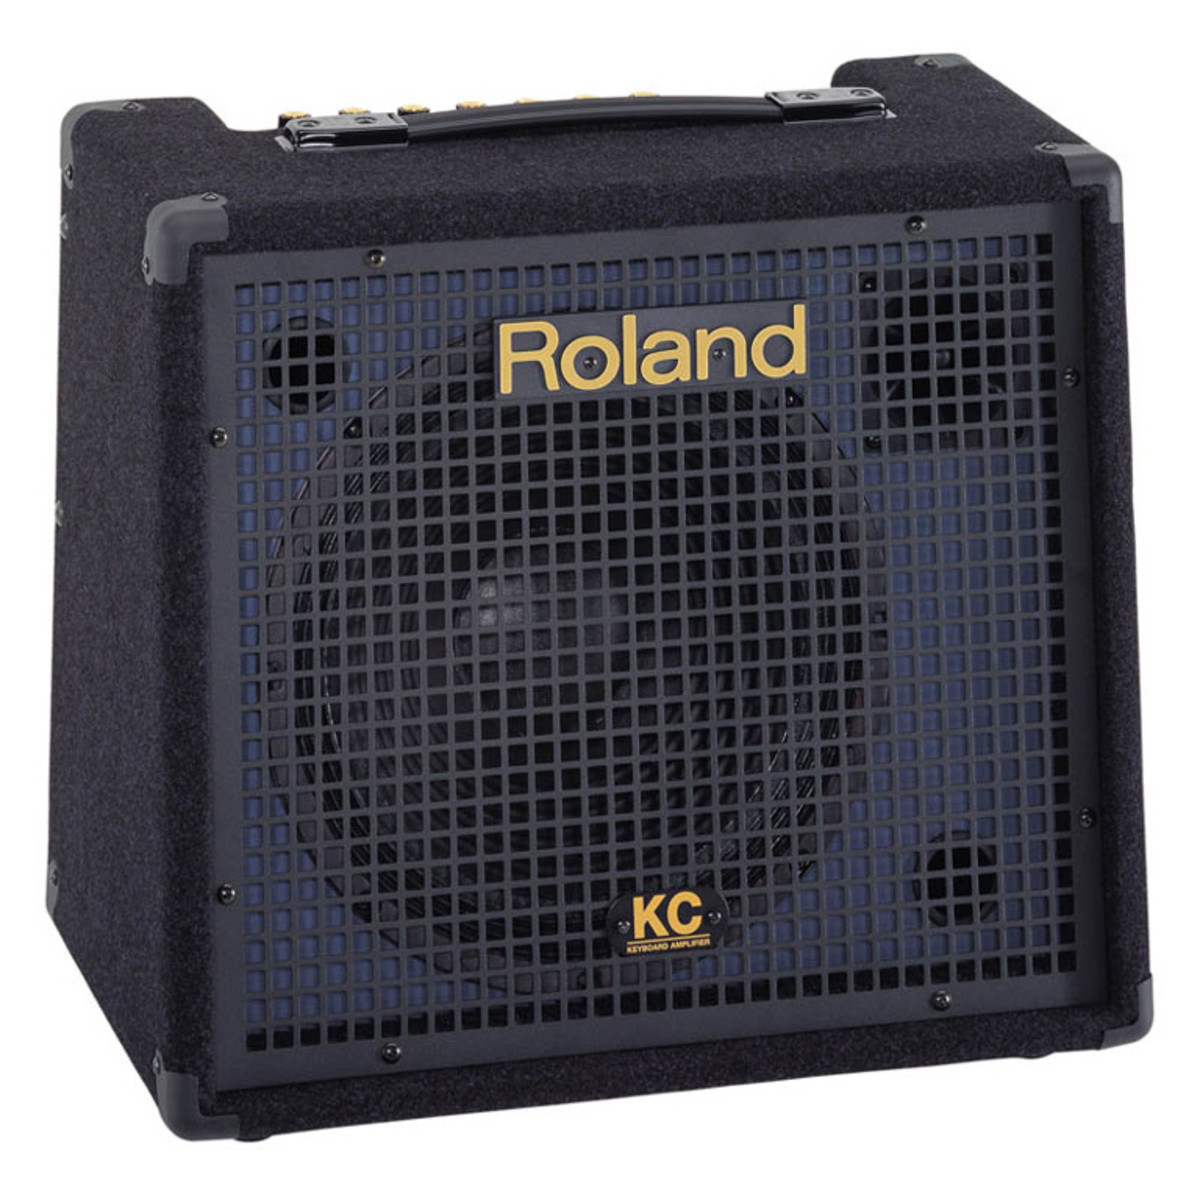 roland kc150 keyboard amplifier trax music store. Black Bedroom Furniture Sets. Home Design Ideas